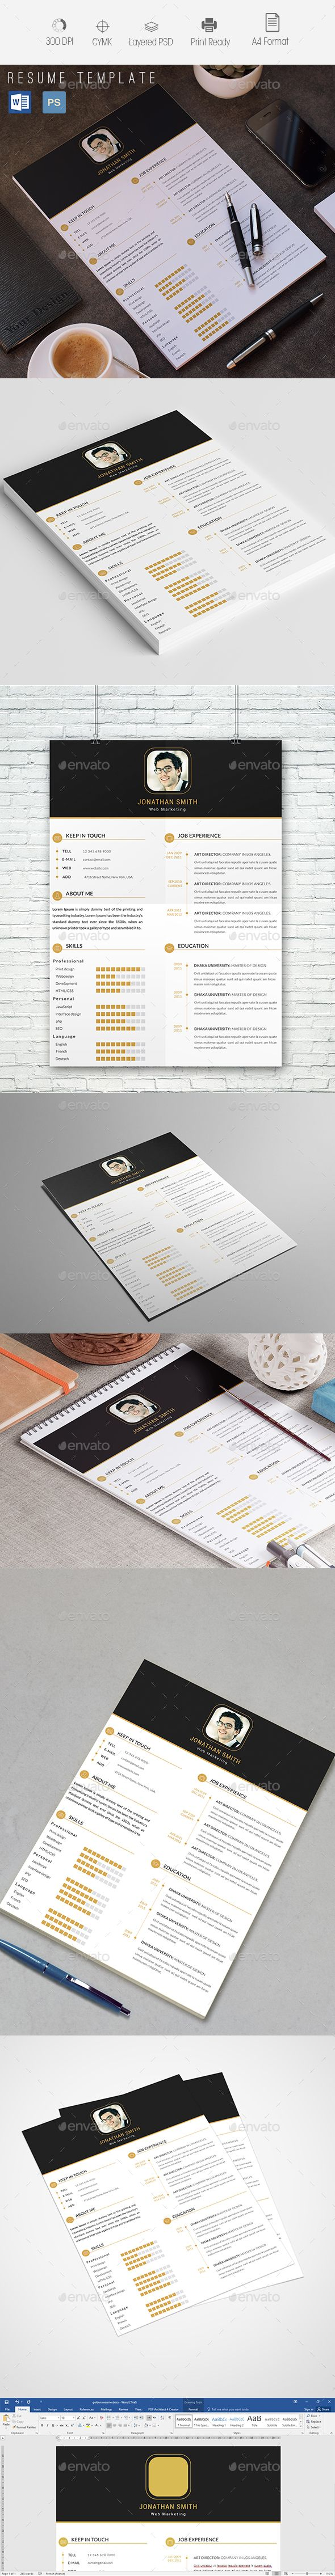 FEATURES RESUME Fully Layered PSD fileFully Customizable